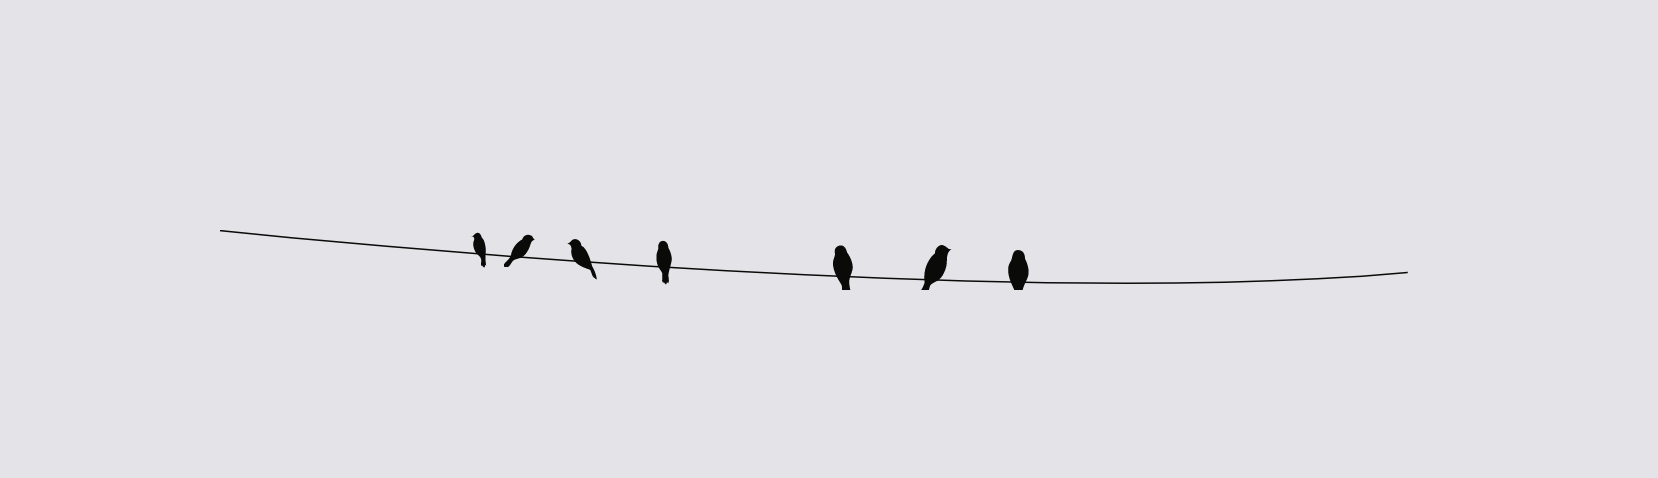 The horizontal rule style I am using on my Web site. It is a vector illustration of a few bird silhouettes standing on a curvey horizontal black wire.